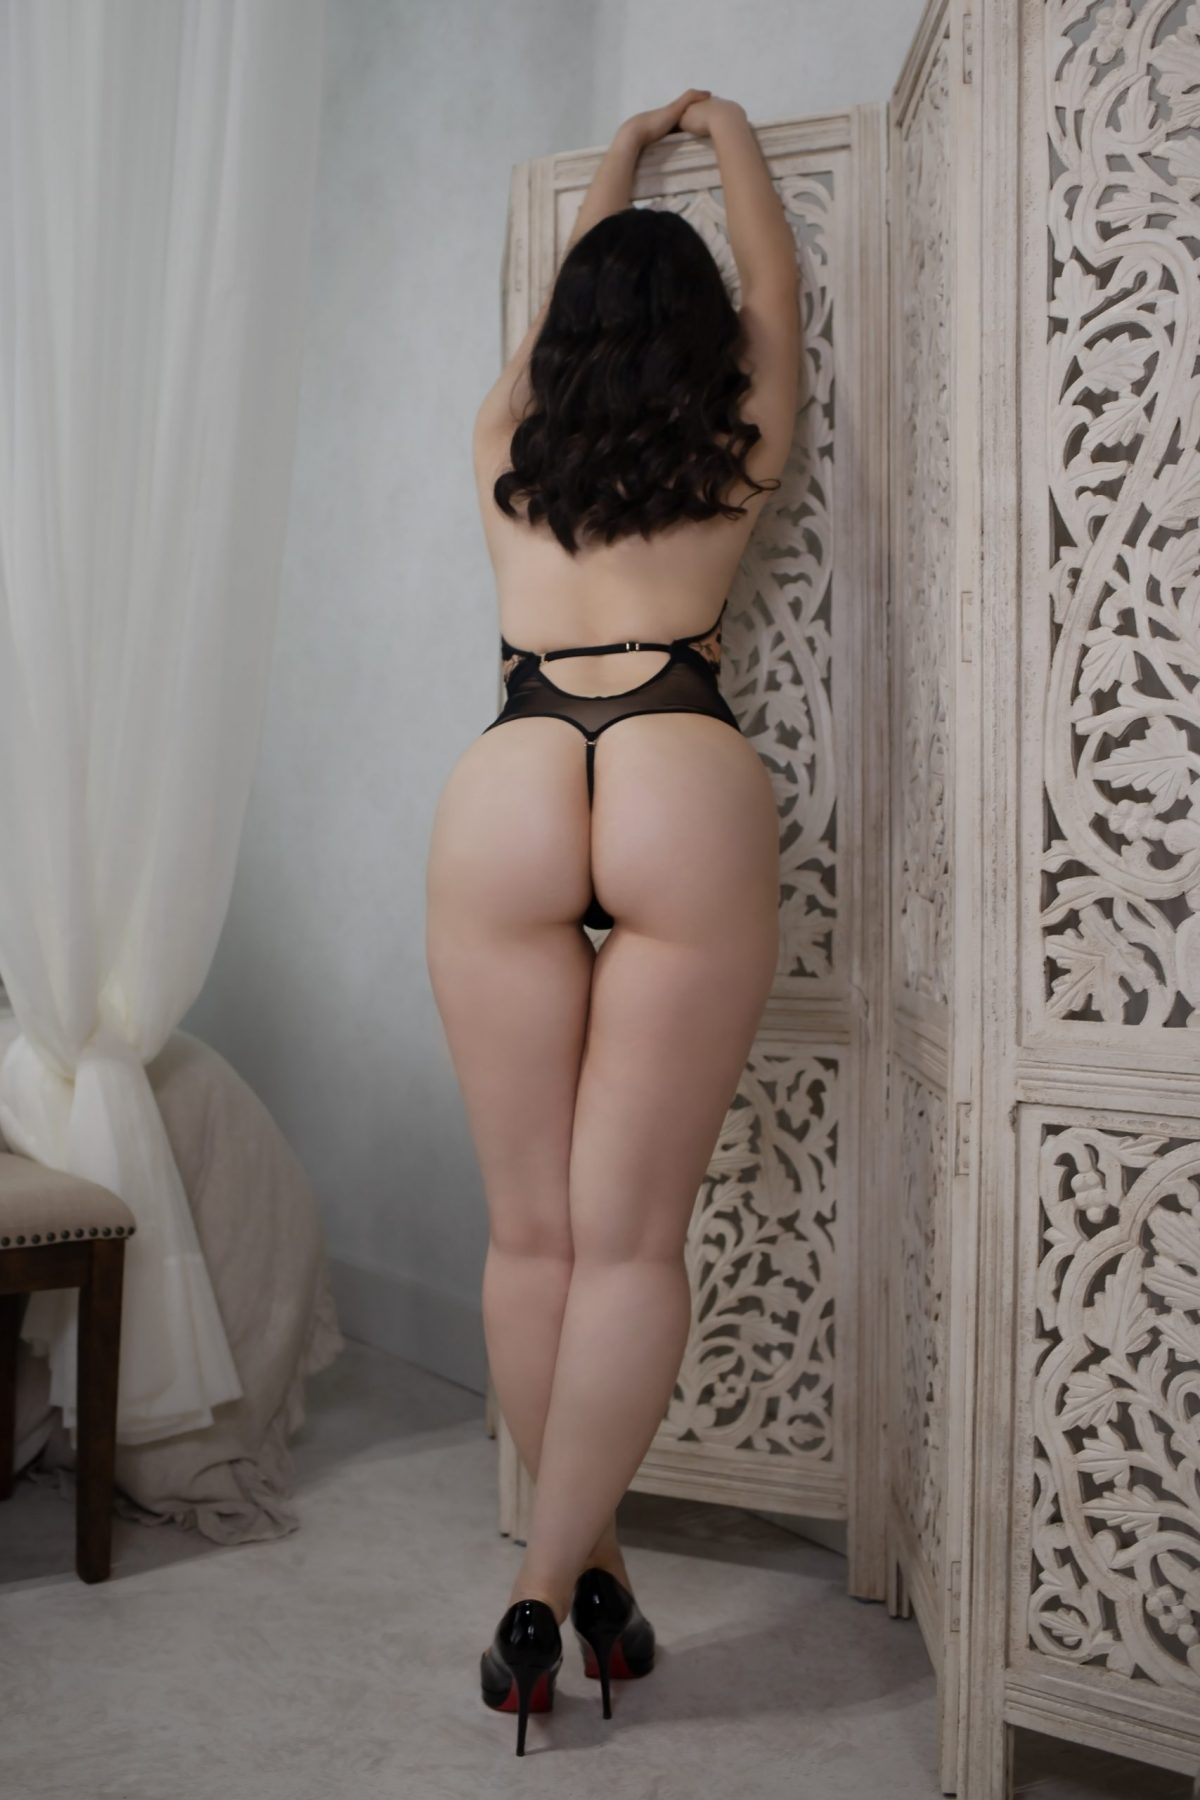 Toronto escorts companion upscale Adina Interests Duo Couple-friendly Disability-friendly Age Mature Figure Slender Curvy Breasts Natural Hair Brunette Ethnicity Middle-Eastern Tattoos None Arrival New Photos New